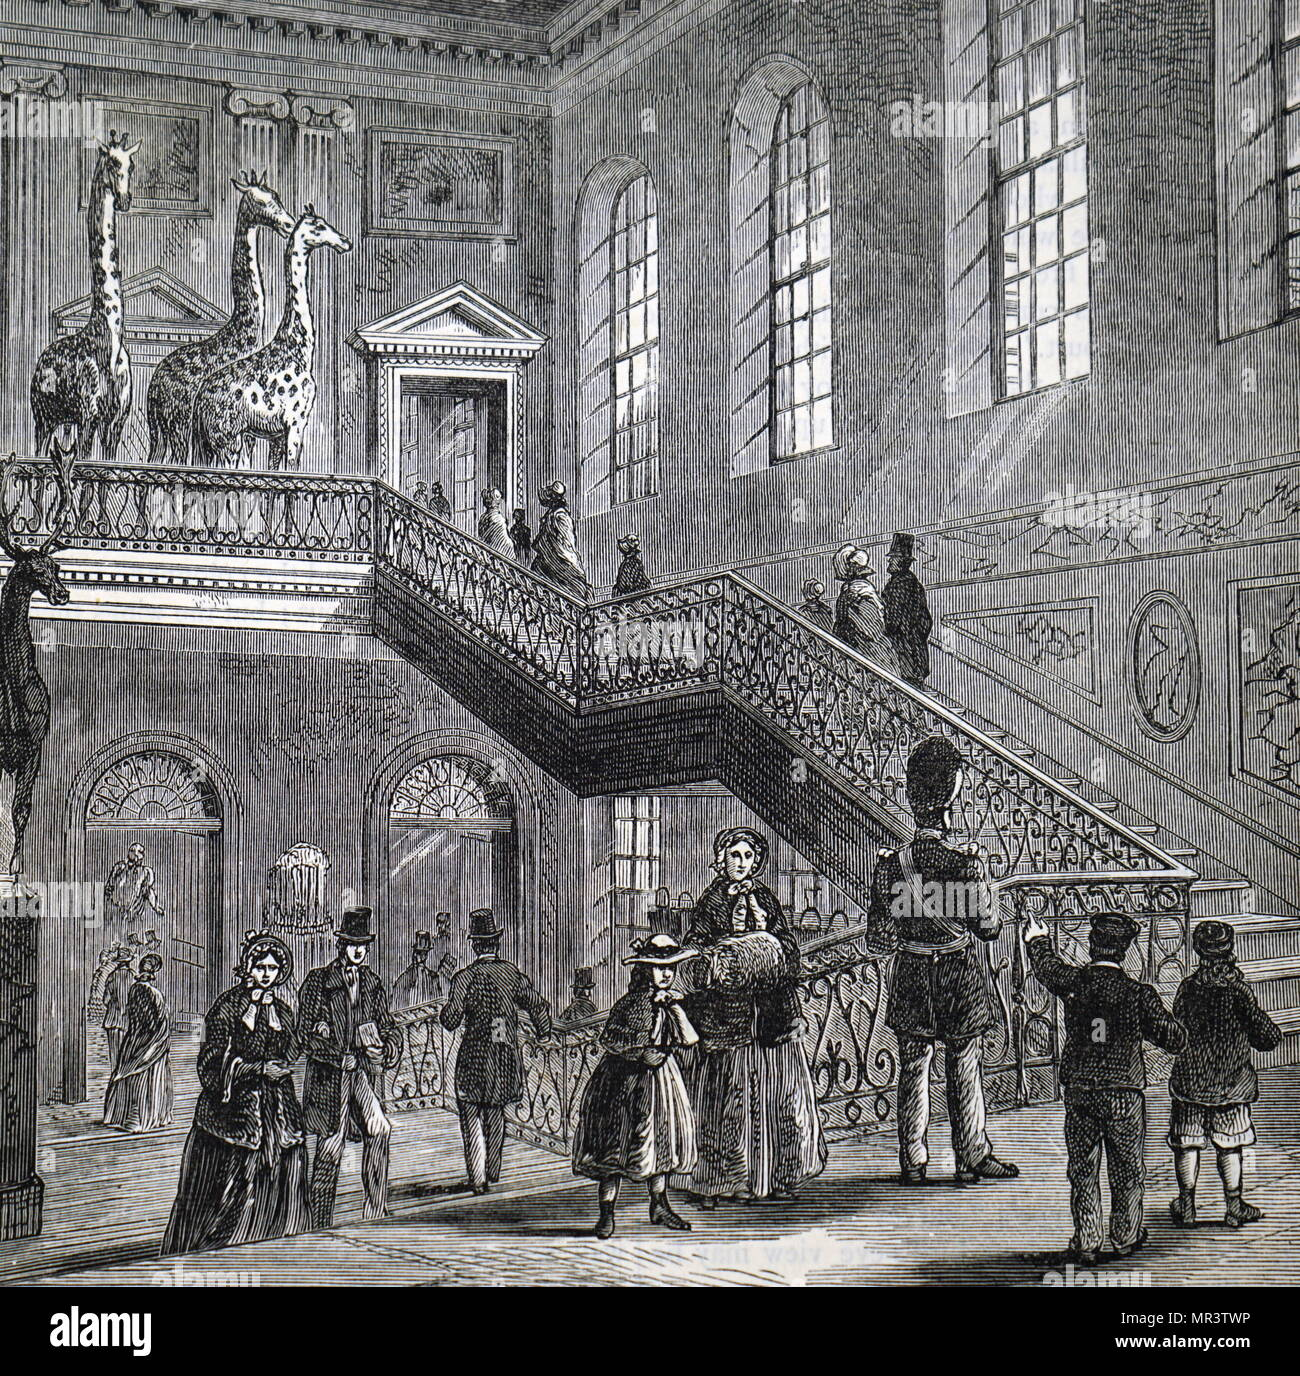 Illustration depicting the grand staircase at Montagu House, Bloomsbury, the first home of the British Museum. Dated 19th century - Stock Image